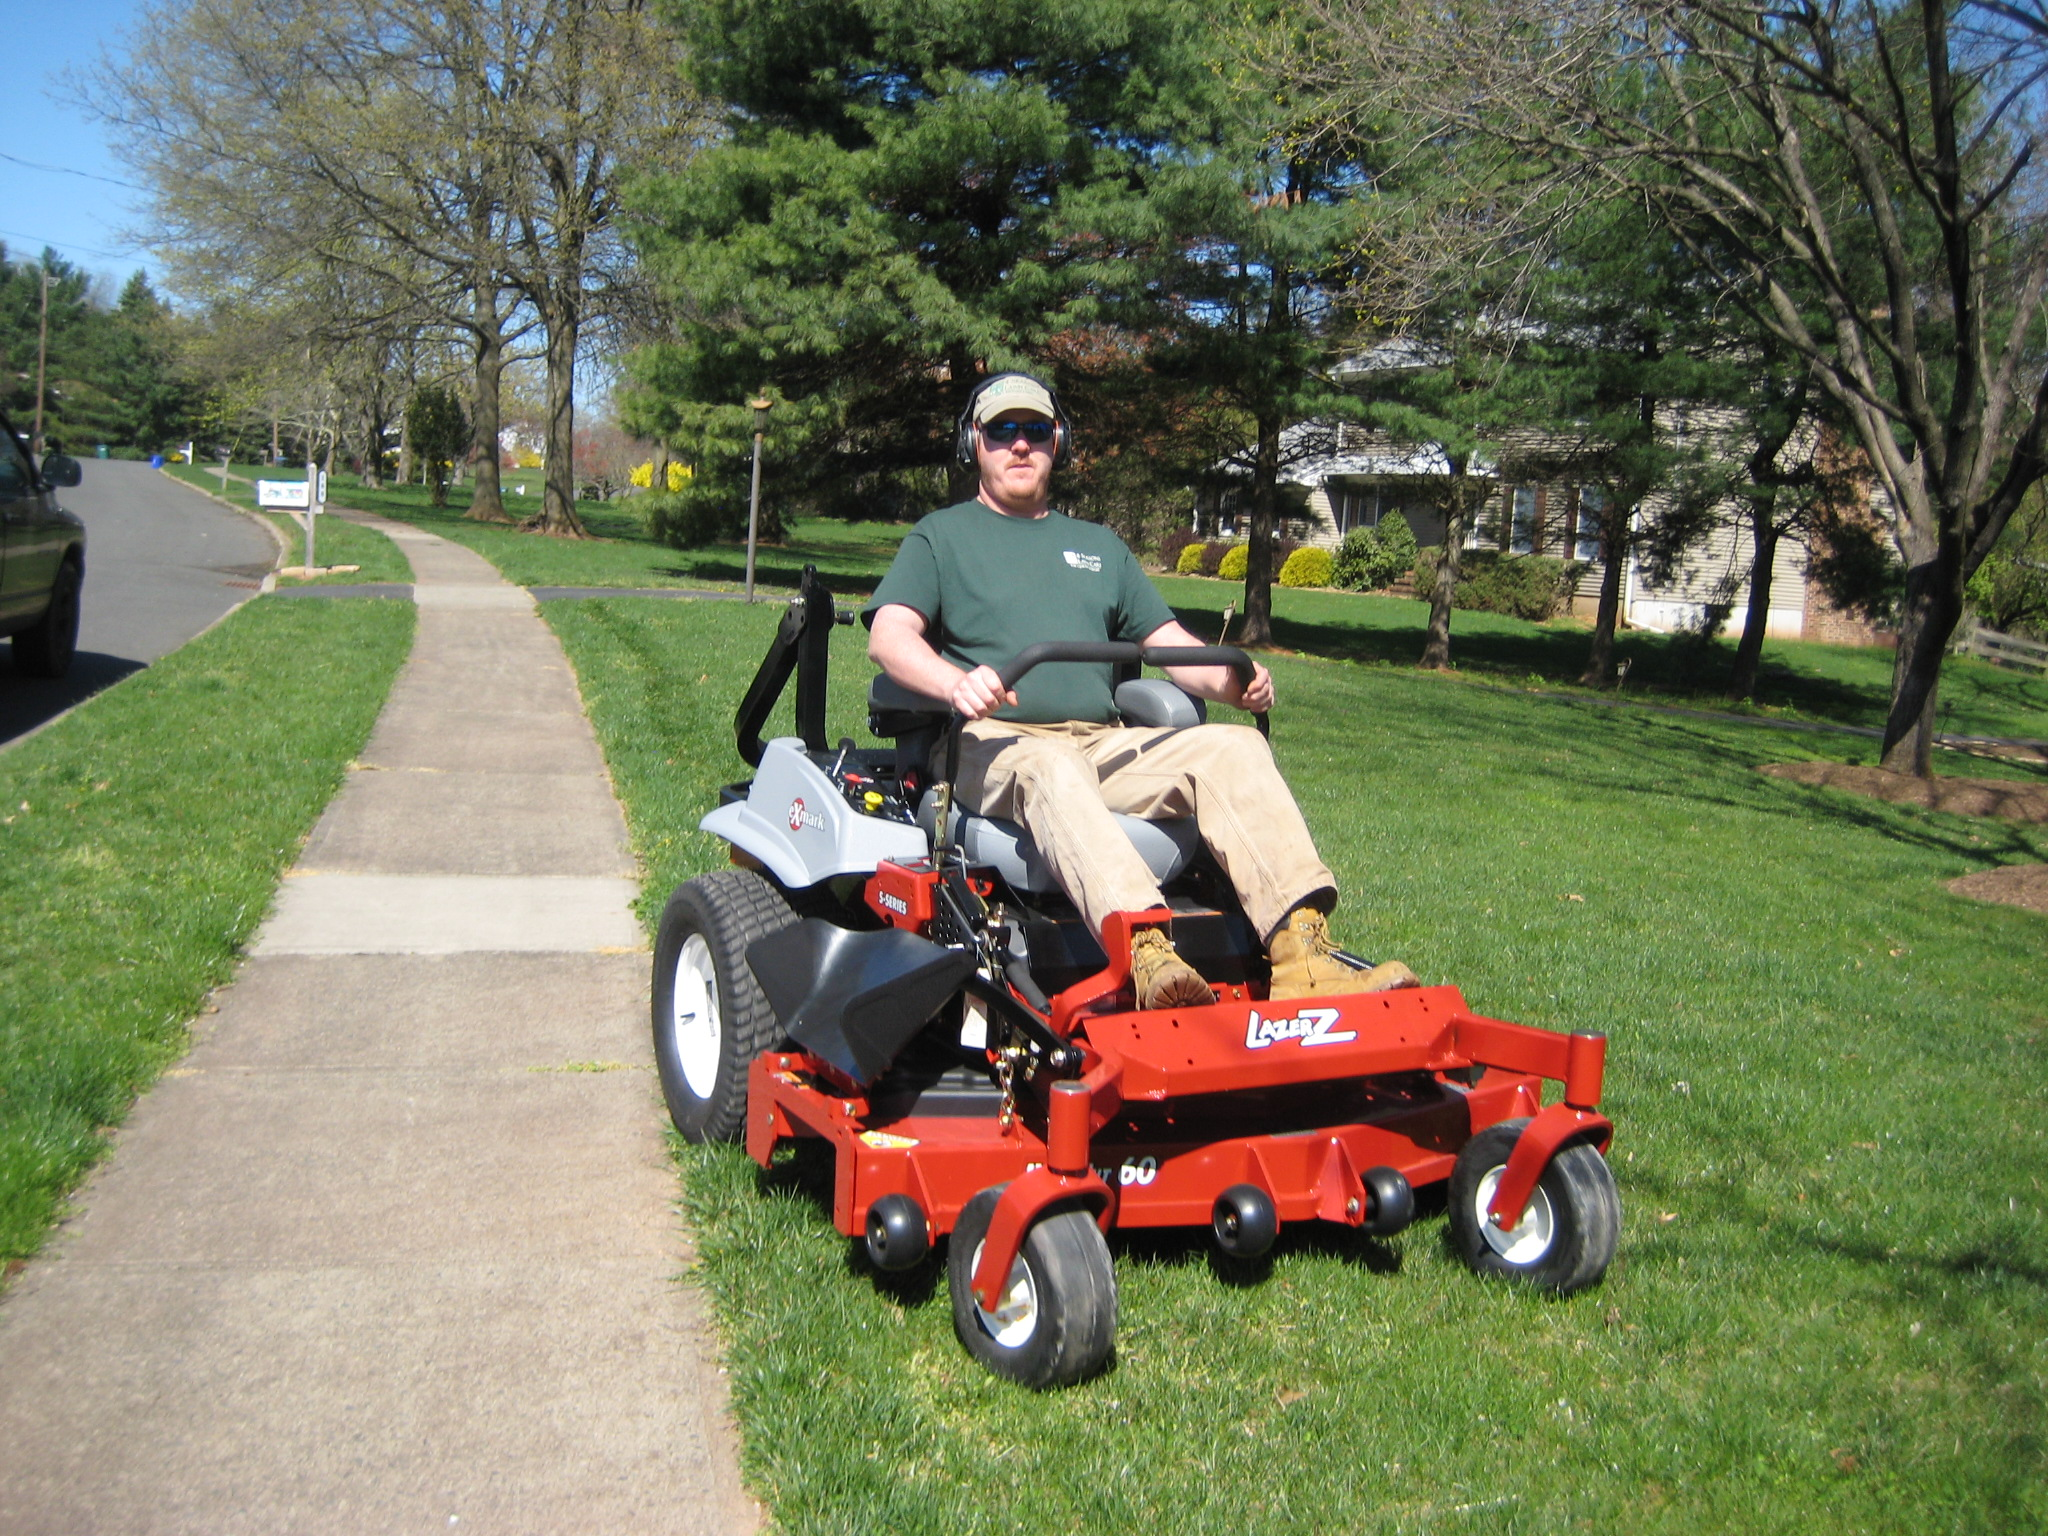 Lawn mowing service 4 seasons lawn care whitehouse for Lawn care and maintenance